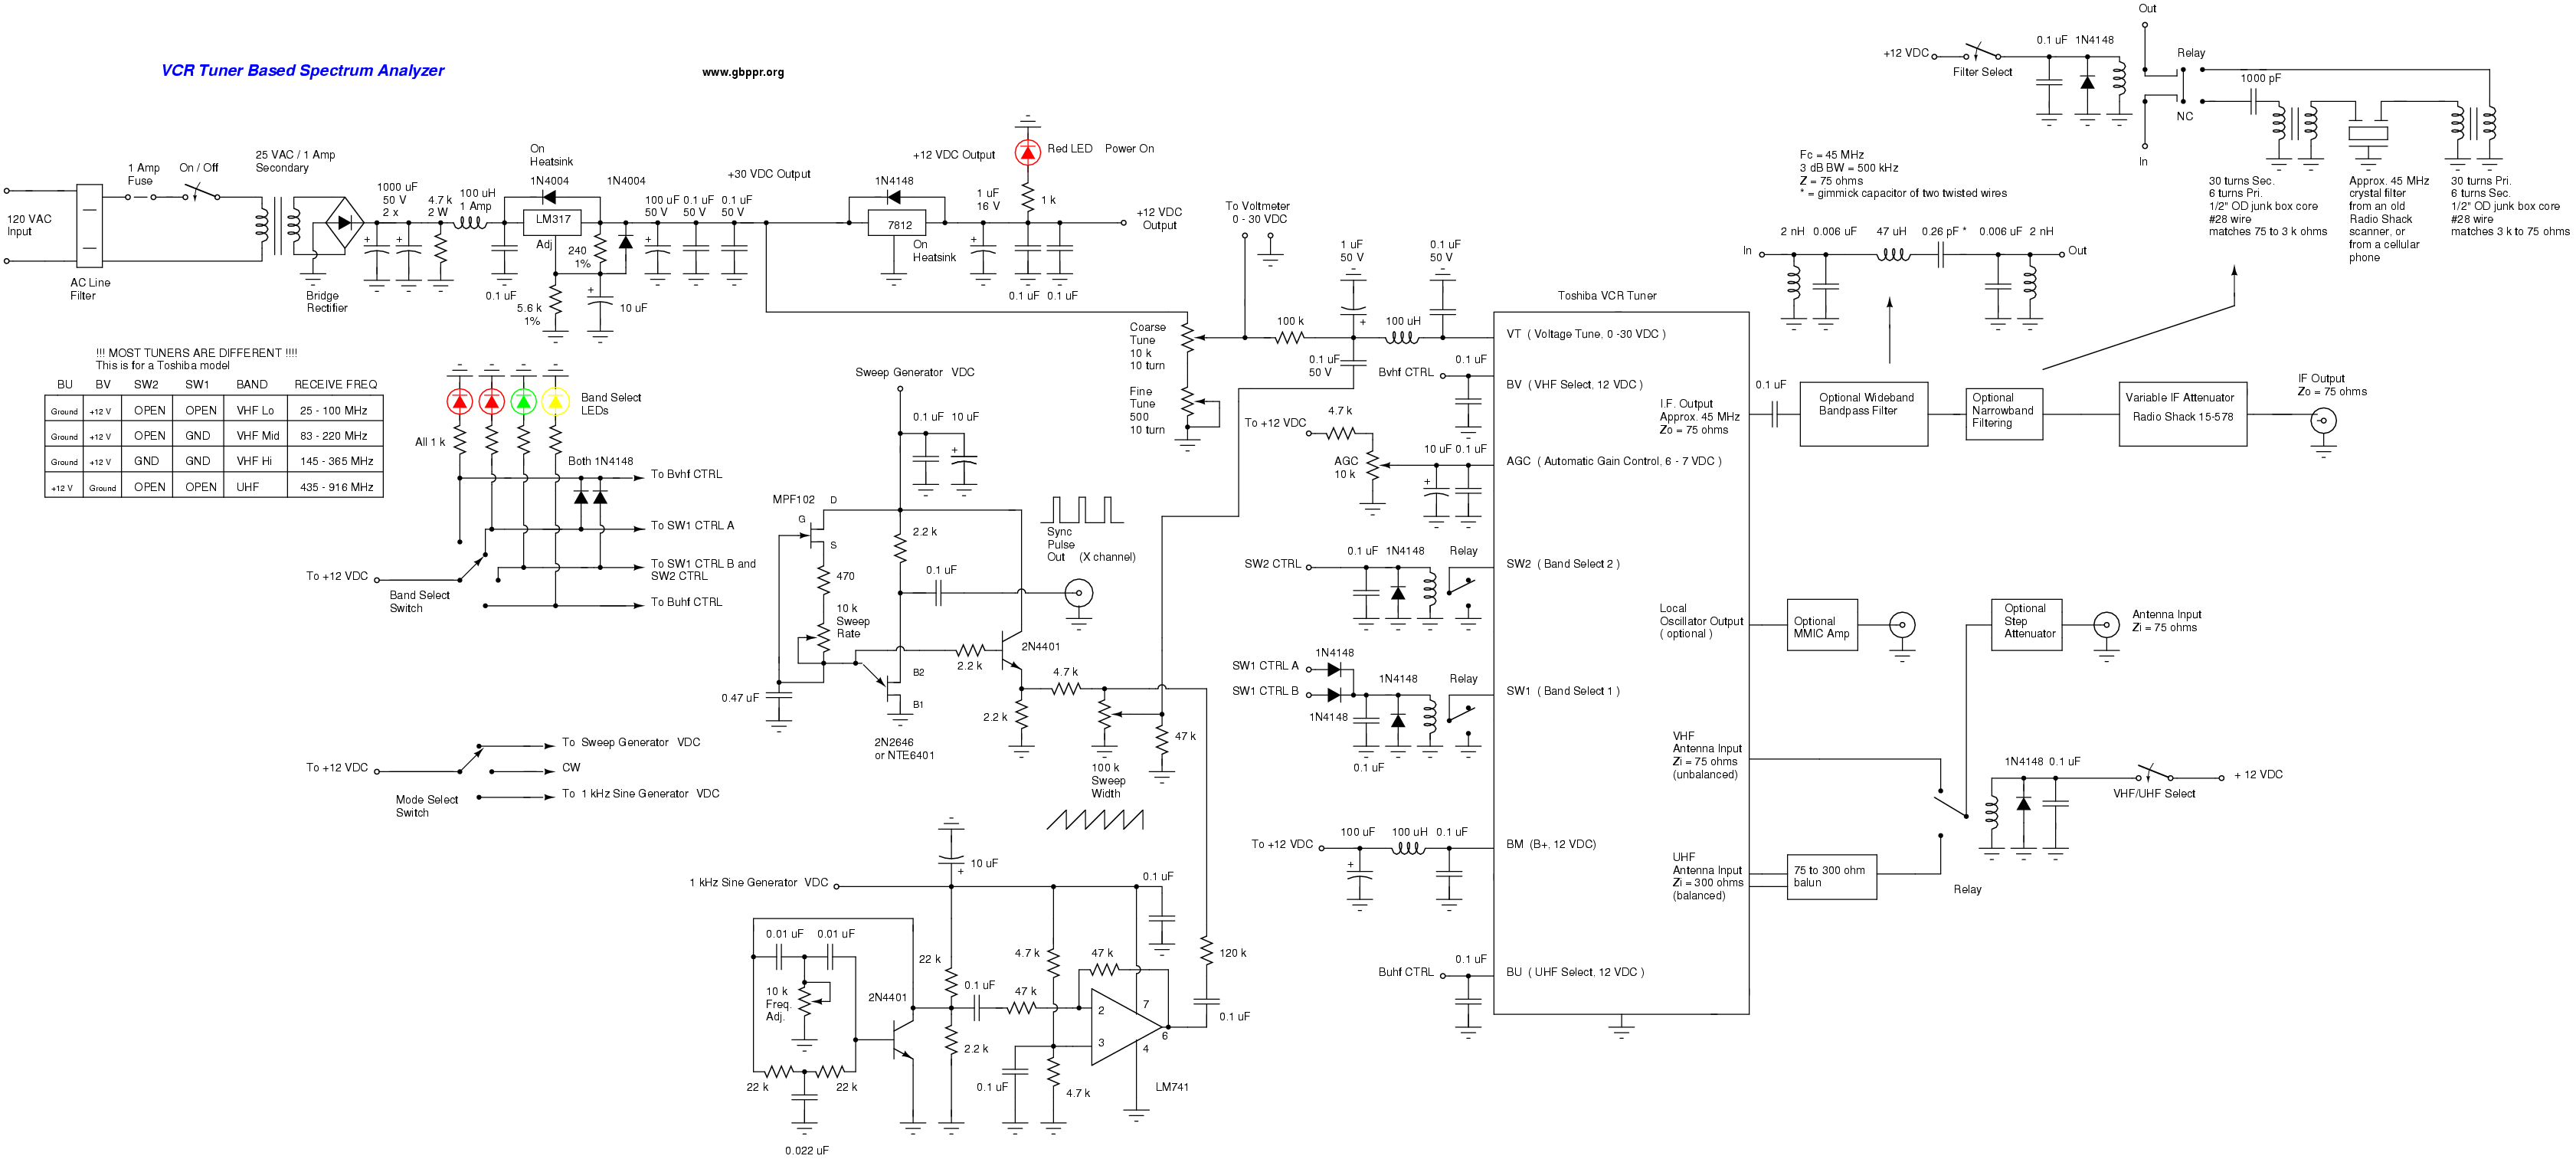 Homebrew Rf Test Equipment And Software Homemade Antenna Wiring Diagram Vcr Tuner Based Spectrum Analyzer Schematic